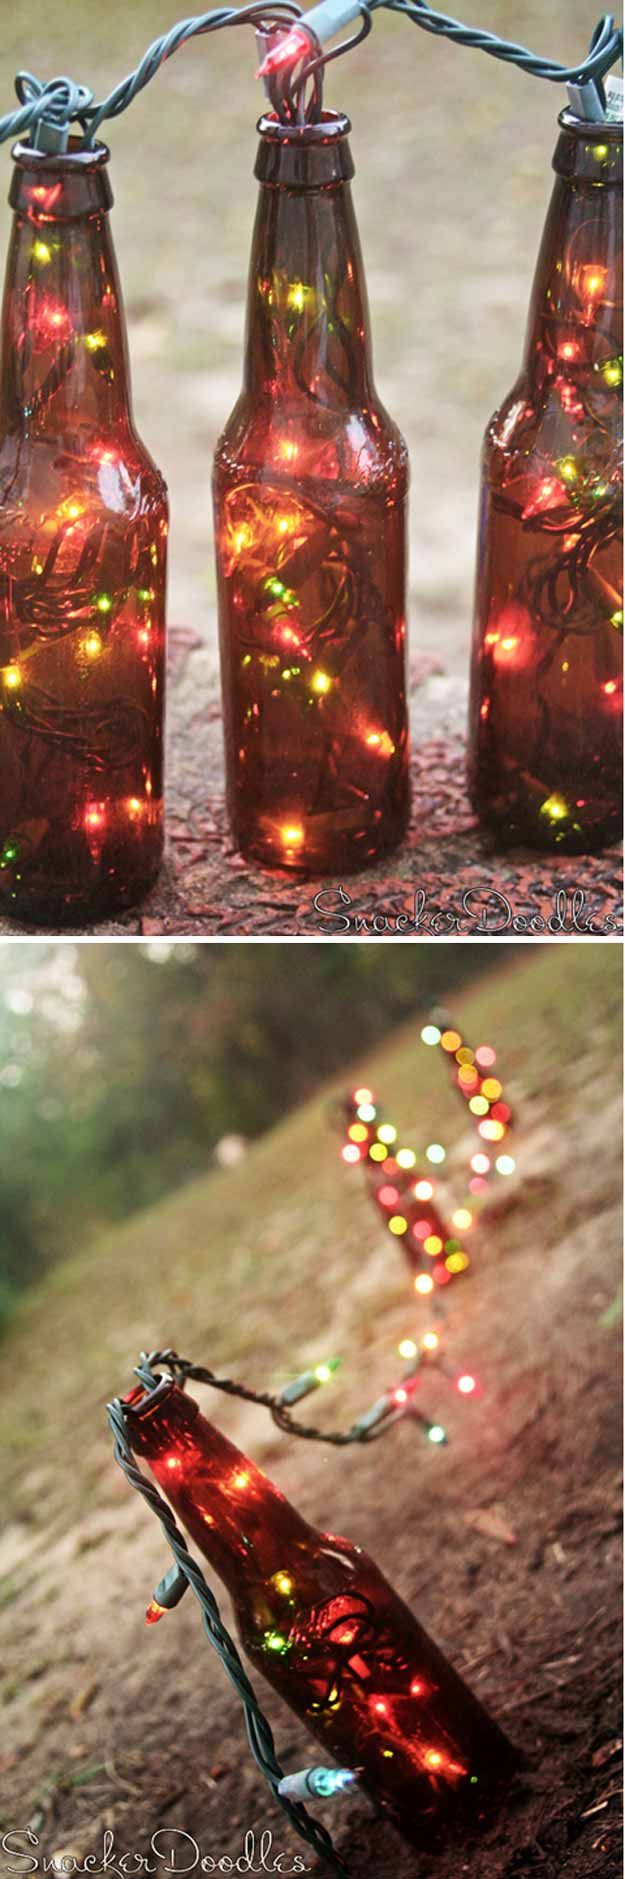 Beer Bottle Lights | 24 Creative Uses for Beer Bottles